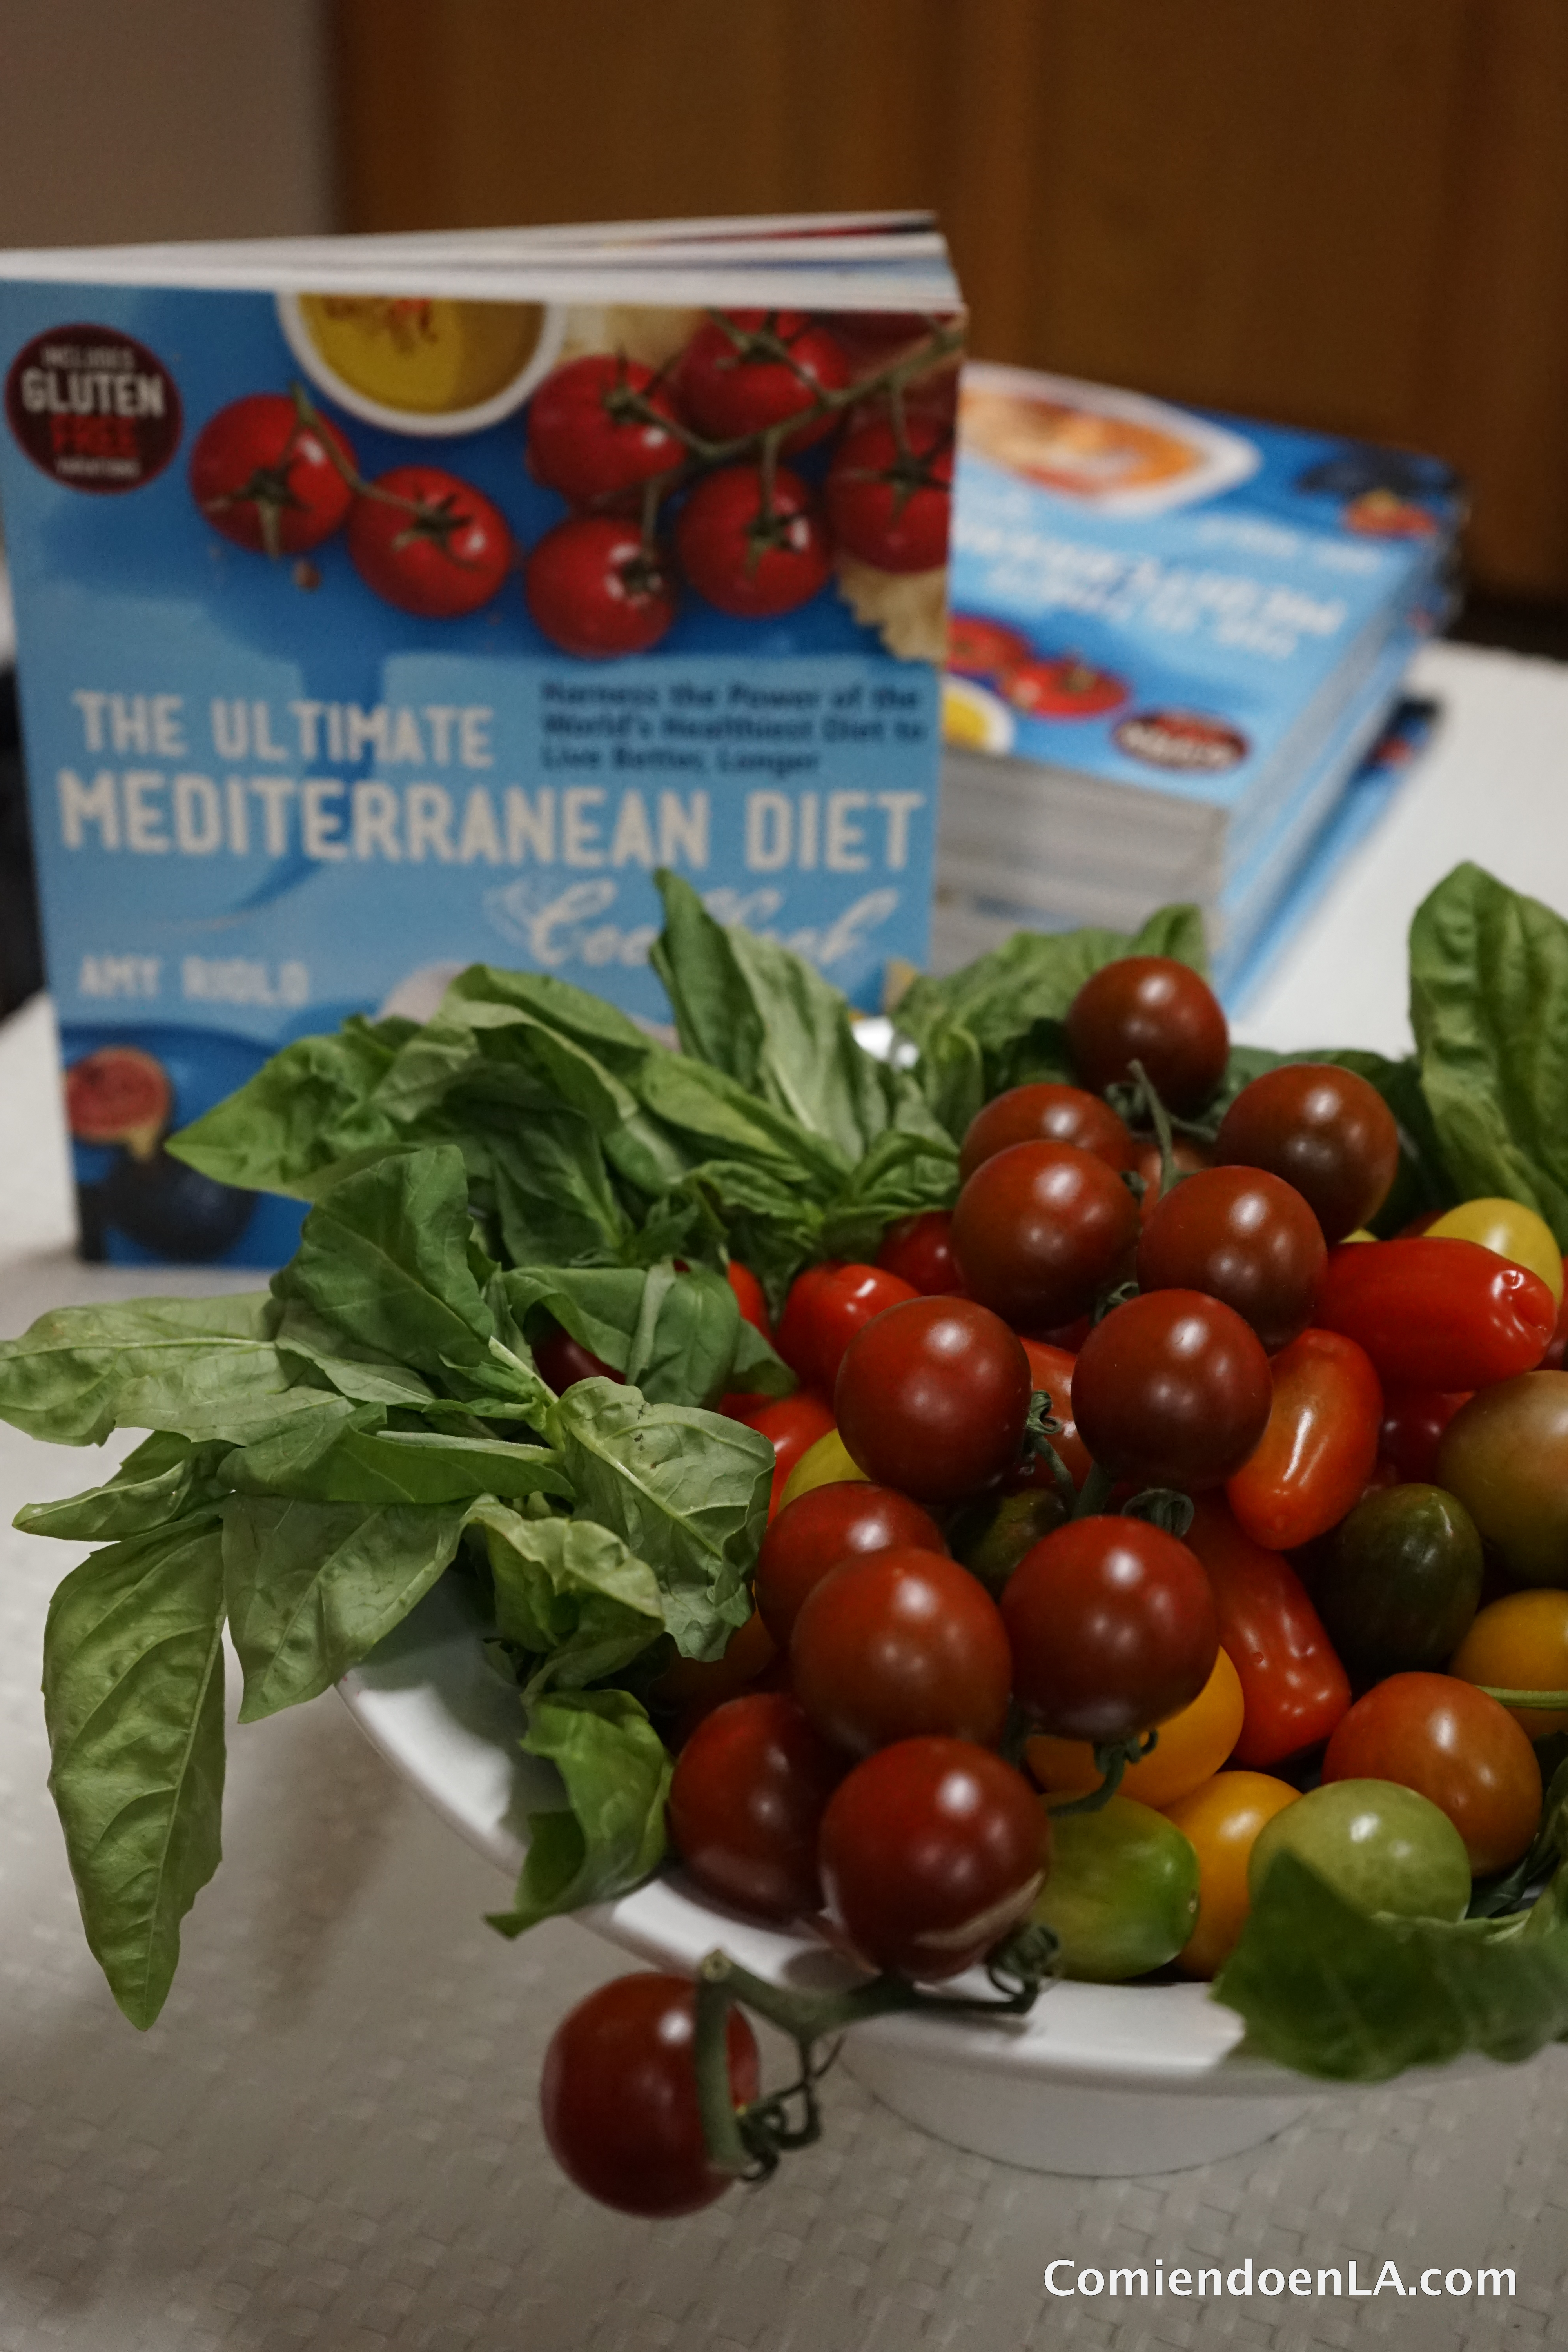 The Ultimate Mediterranean Diet